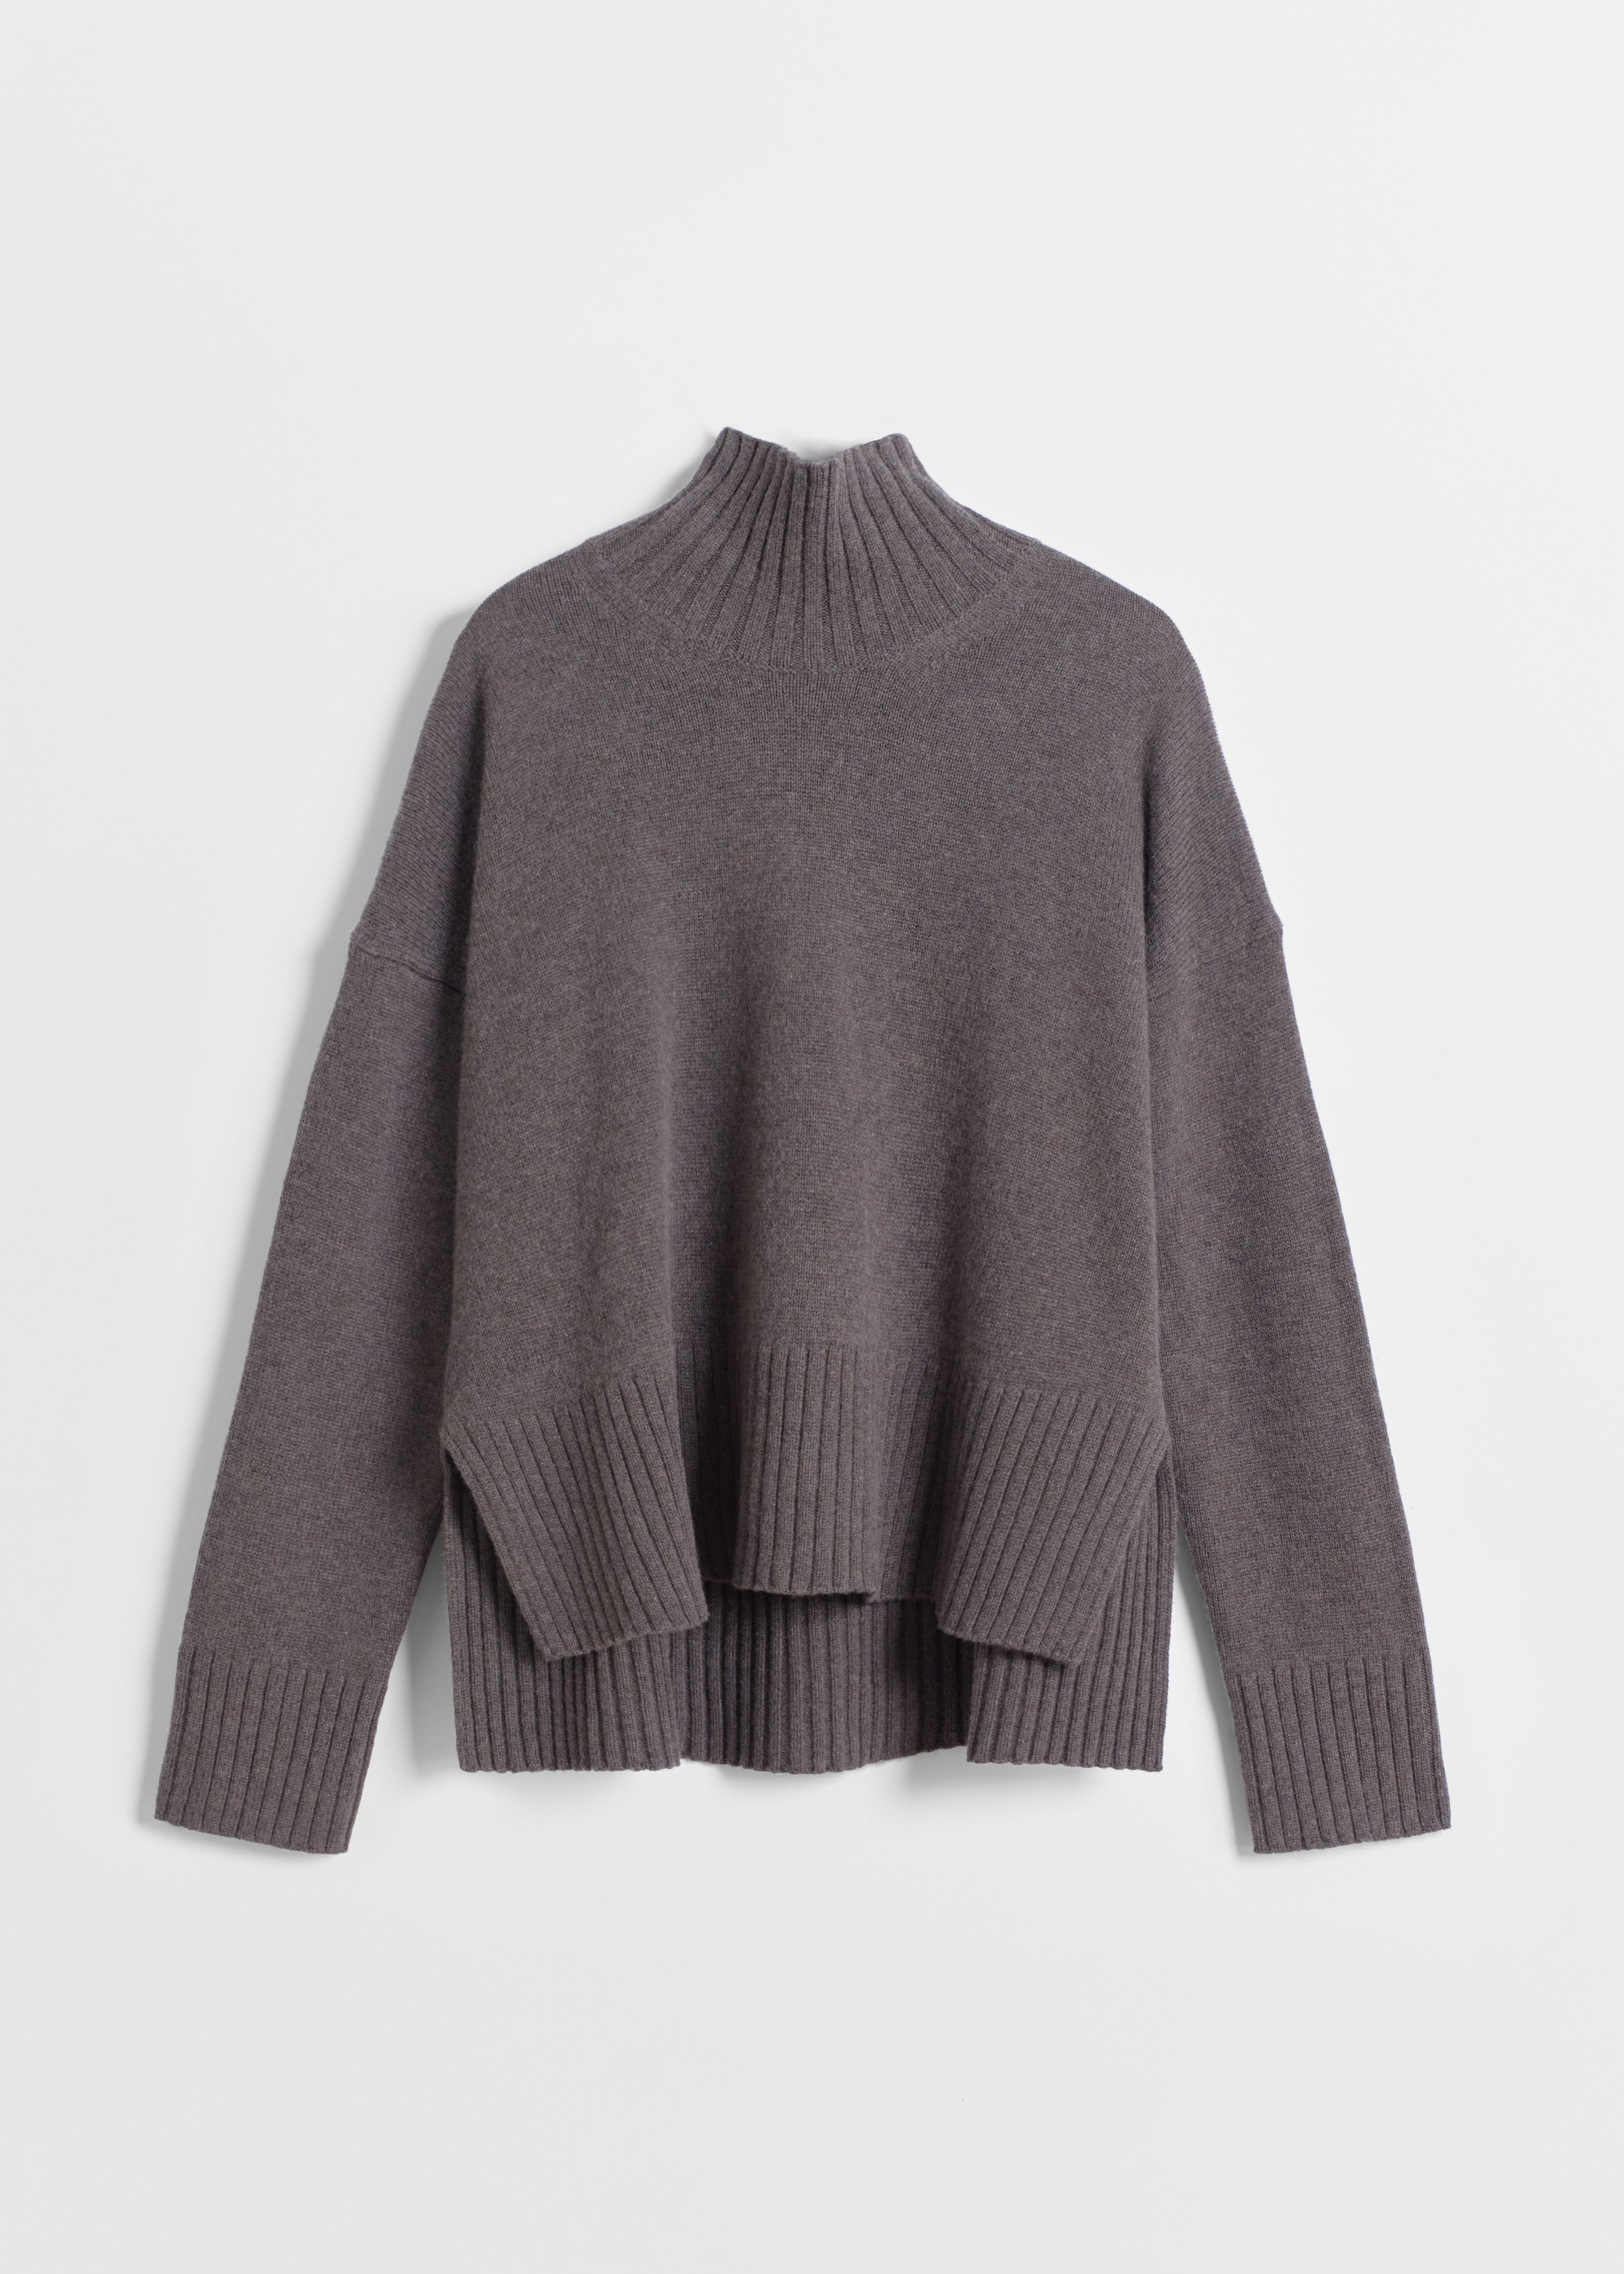 High Neck Sweater in Wool Cashmere - Grey in Brown by Co Collections